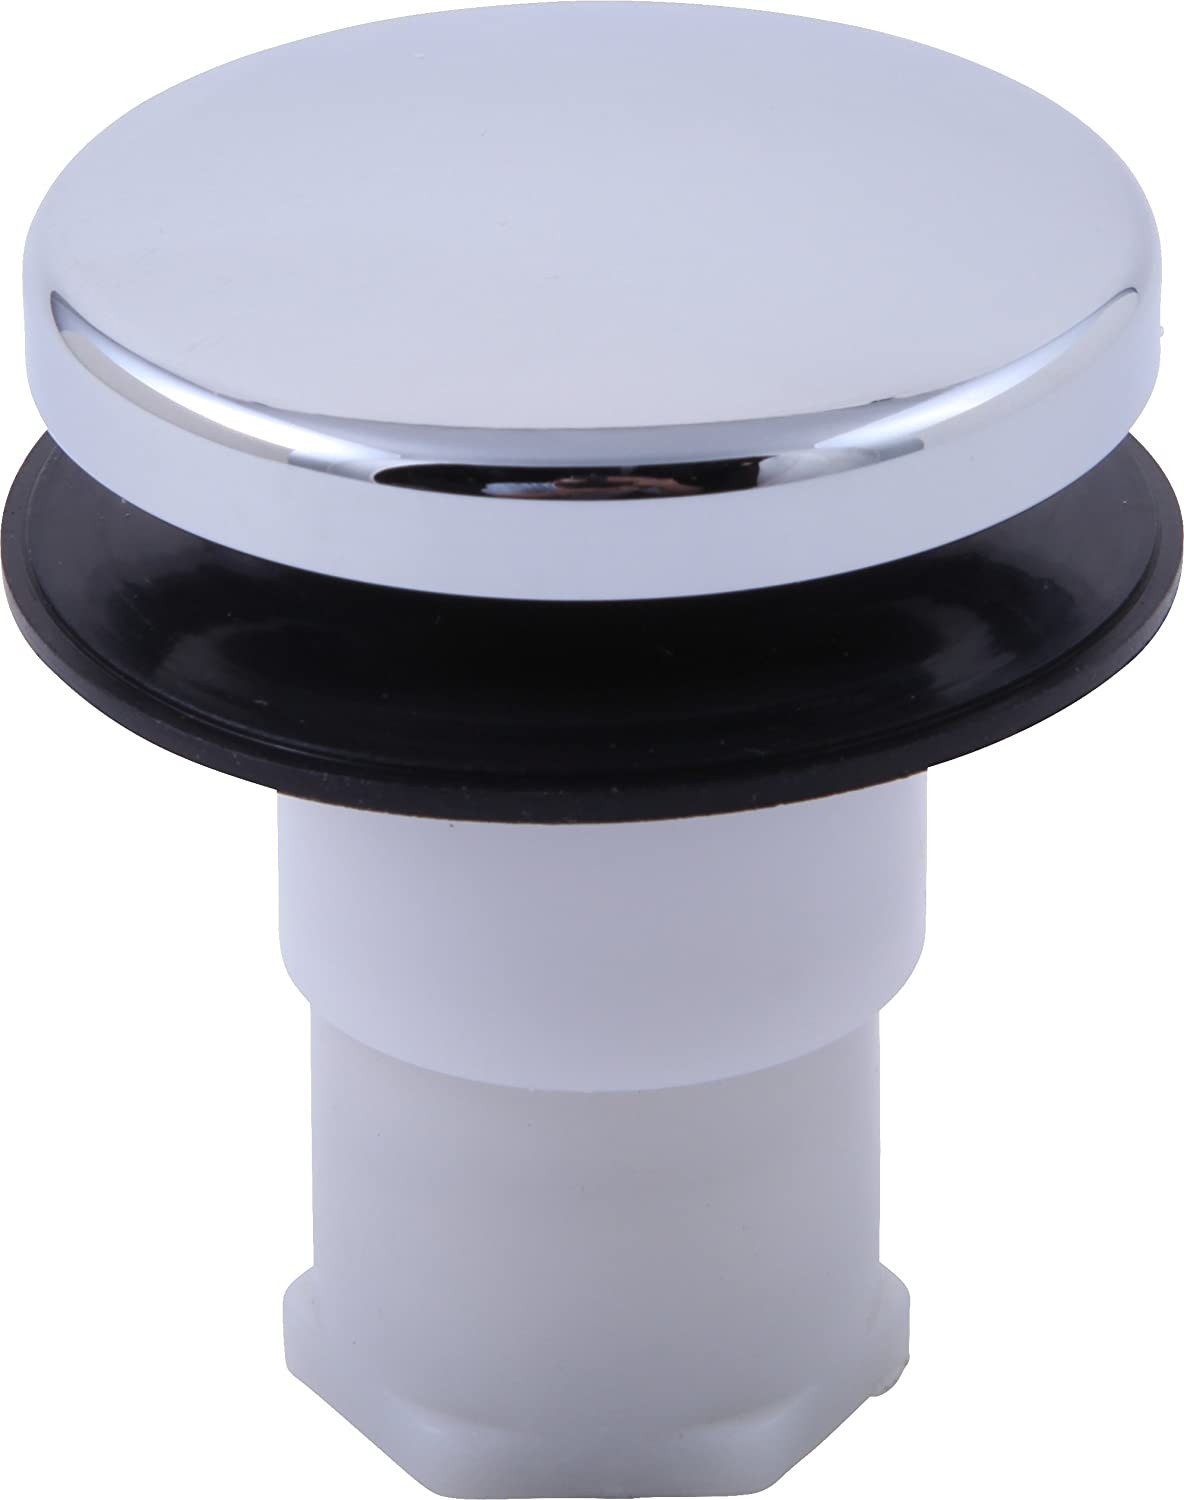 Delta Faucet RP16686 Stopper Assembly, Chrome - Bathroom Sink ...